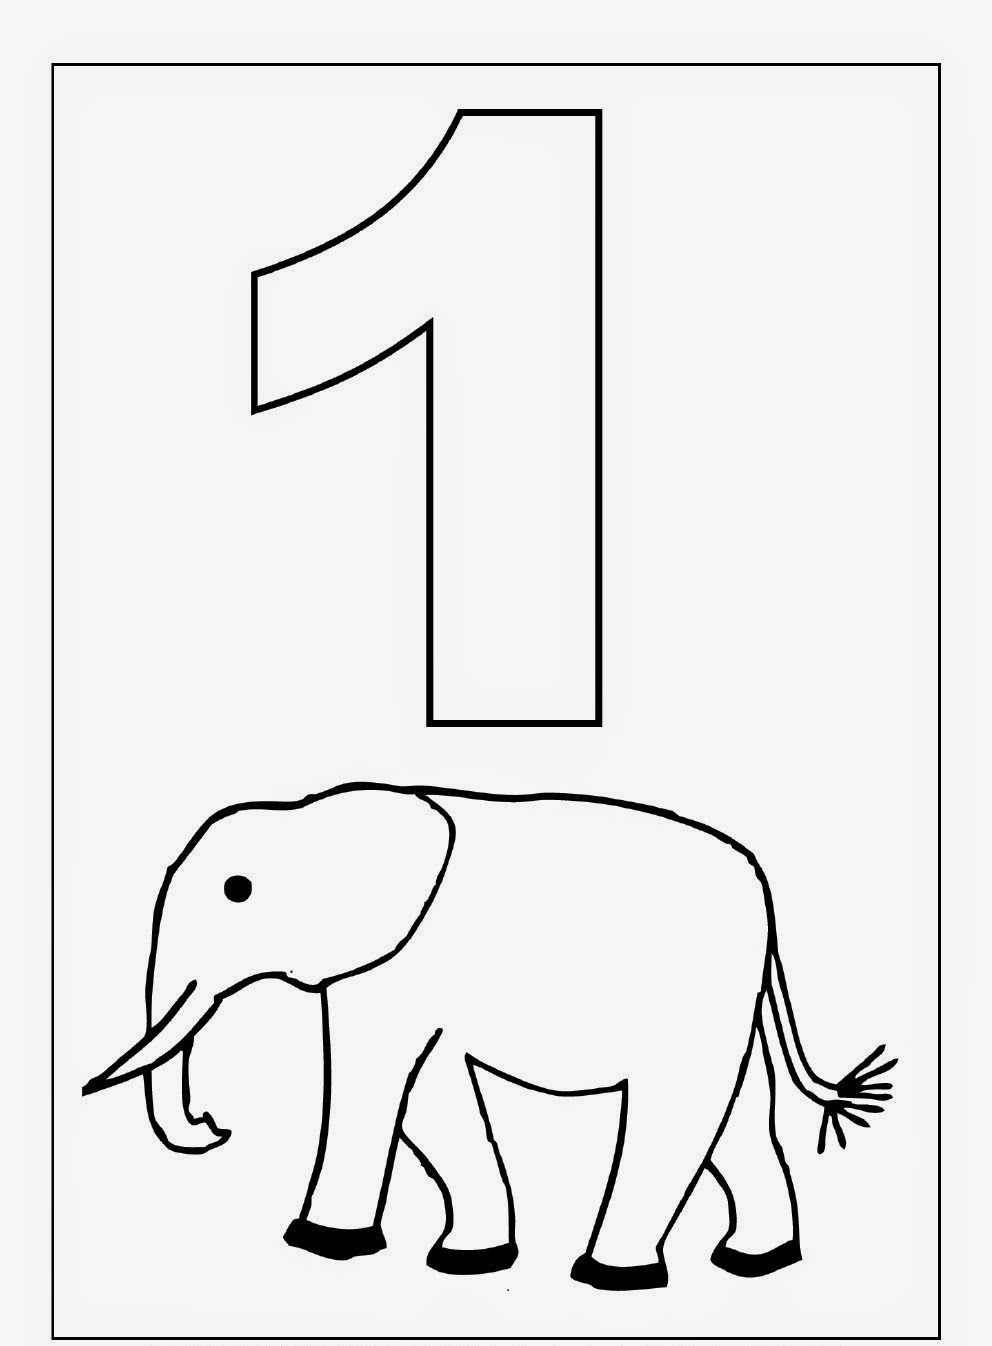 Kindergarten Worksheets Coloring Worksheets Maths 110 – Coloring Worksheet for Kindergarten